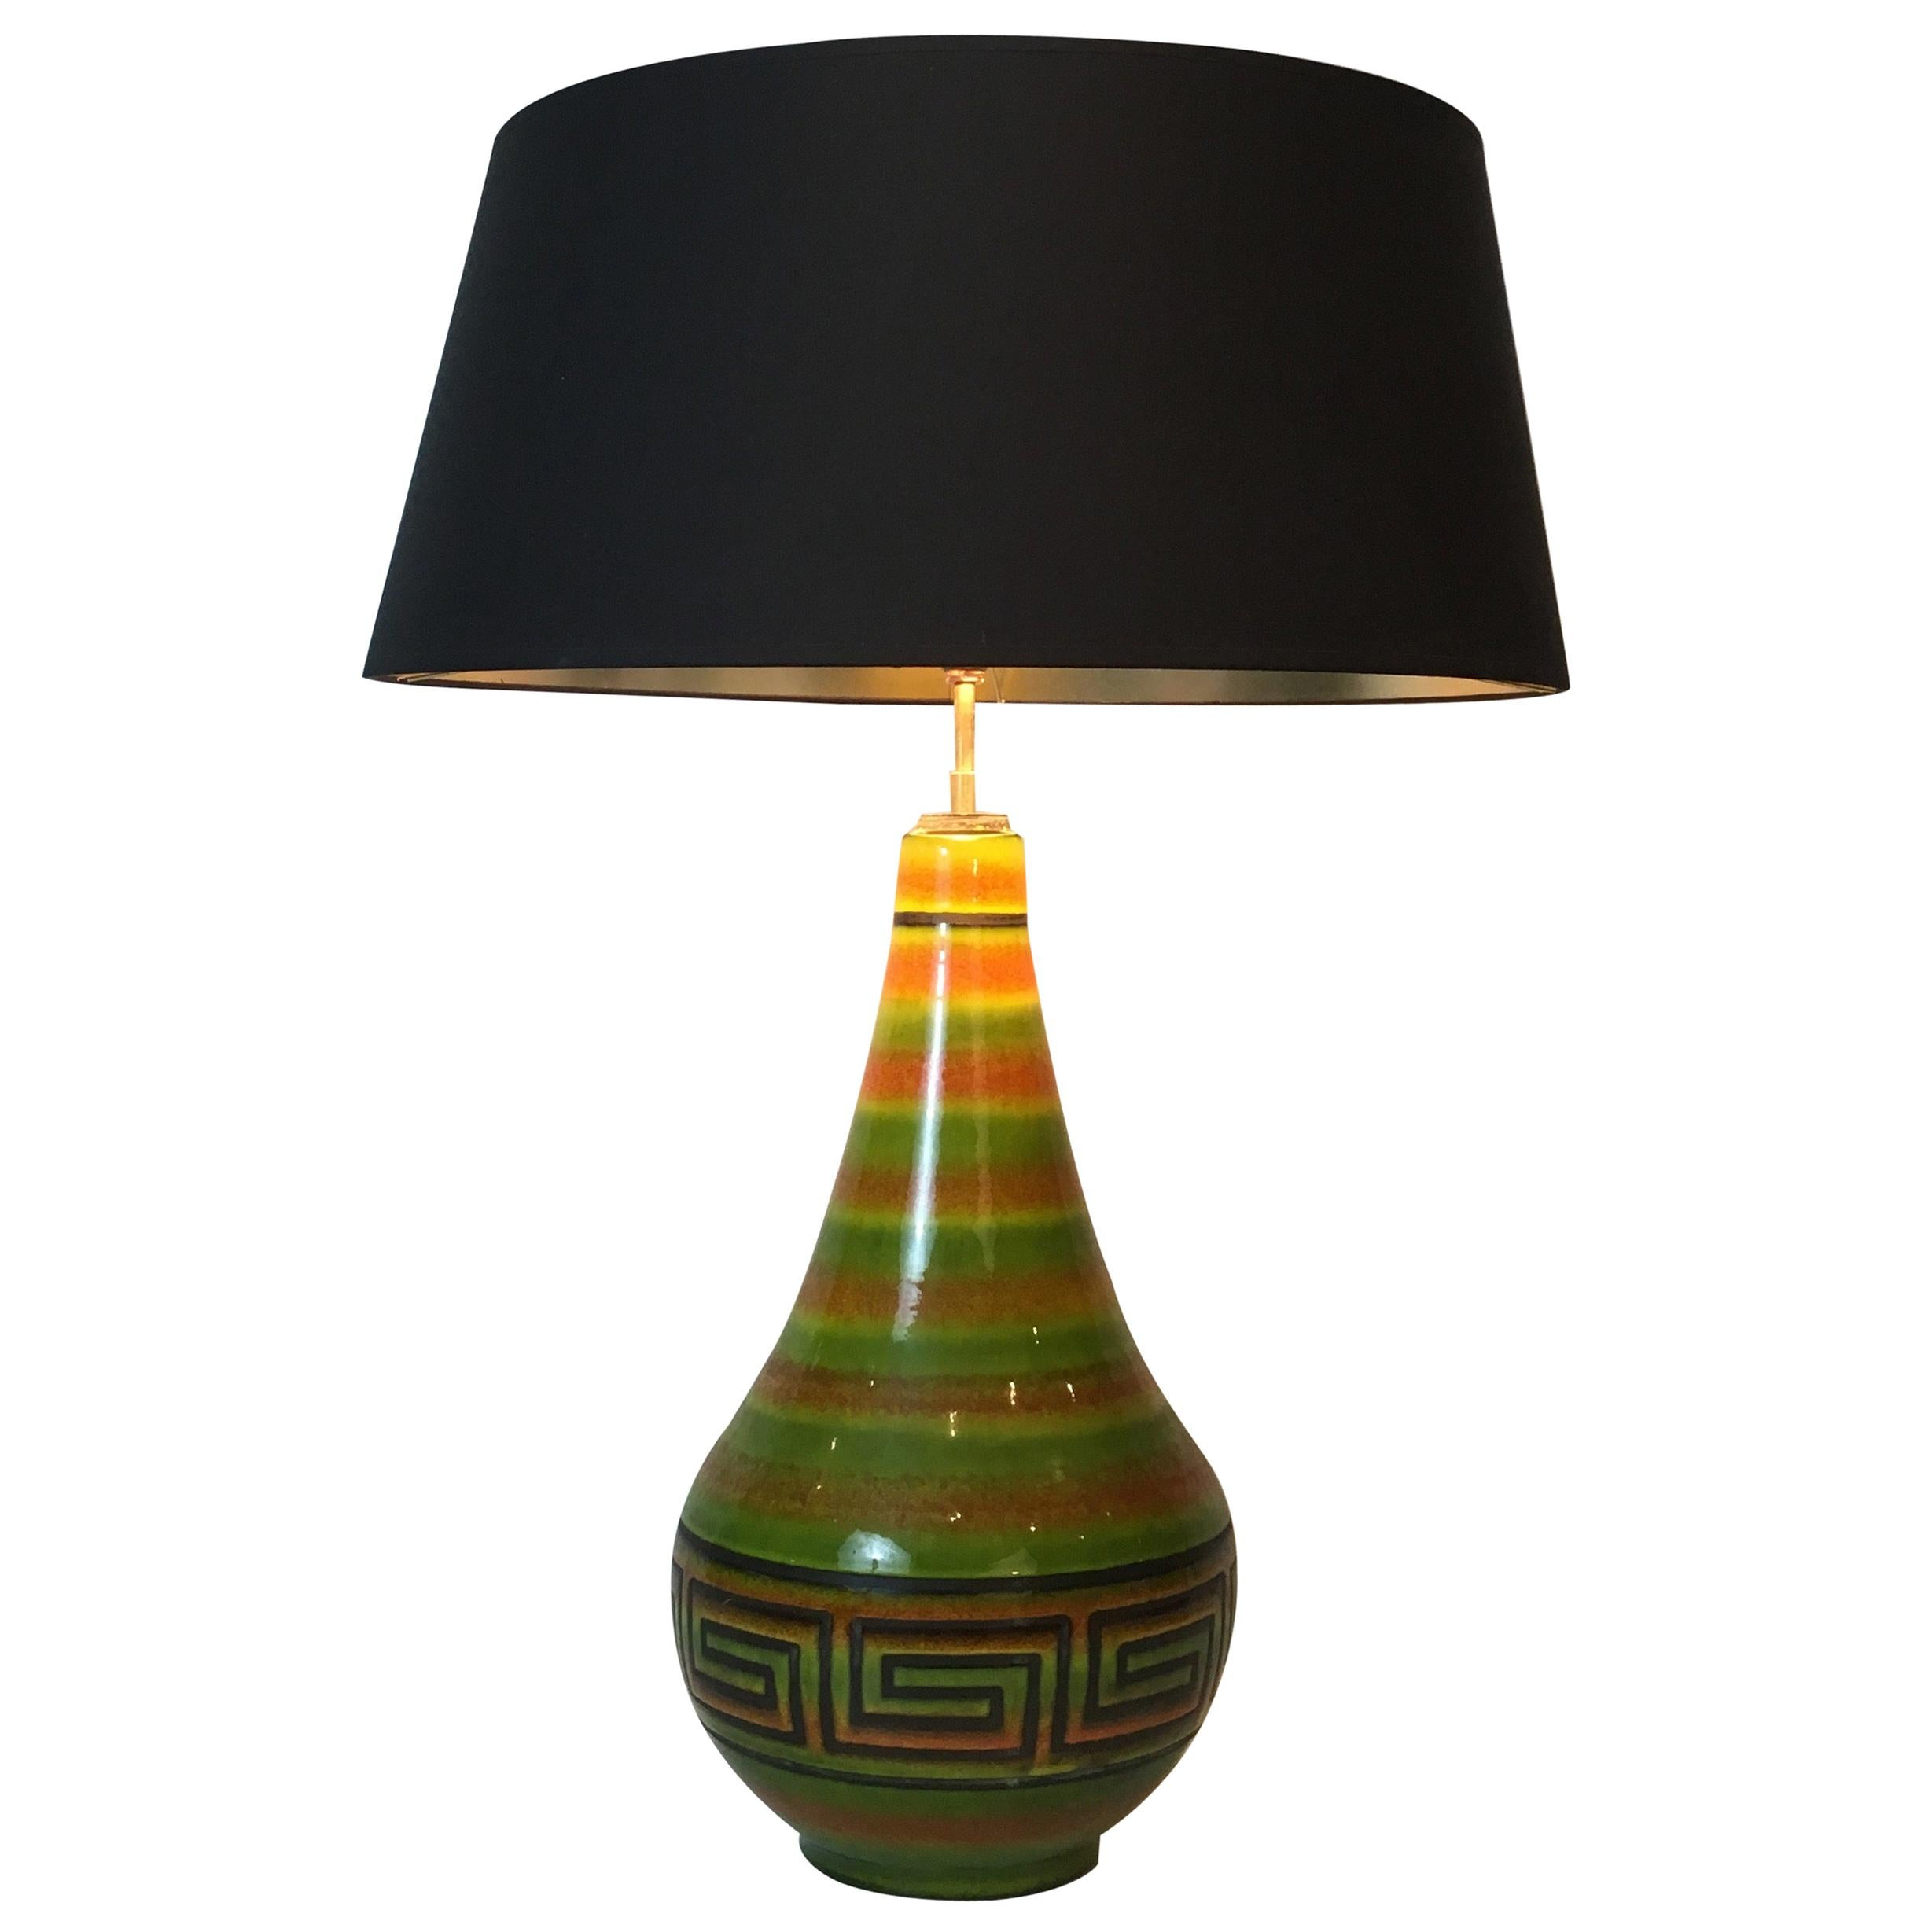 Ceramic Table Lamp with Greek Key Decors, French, circa 1970